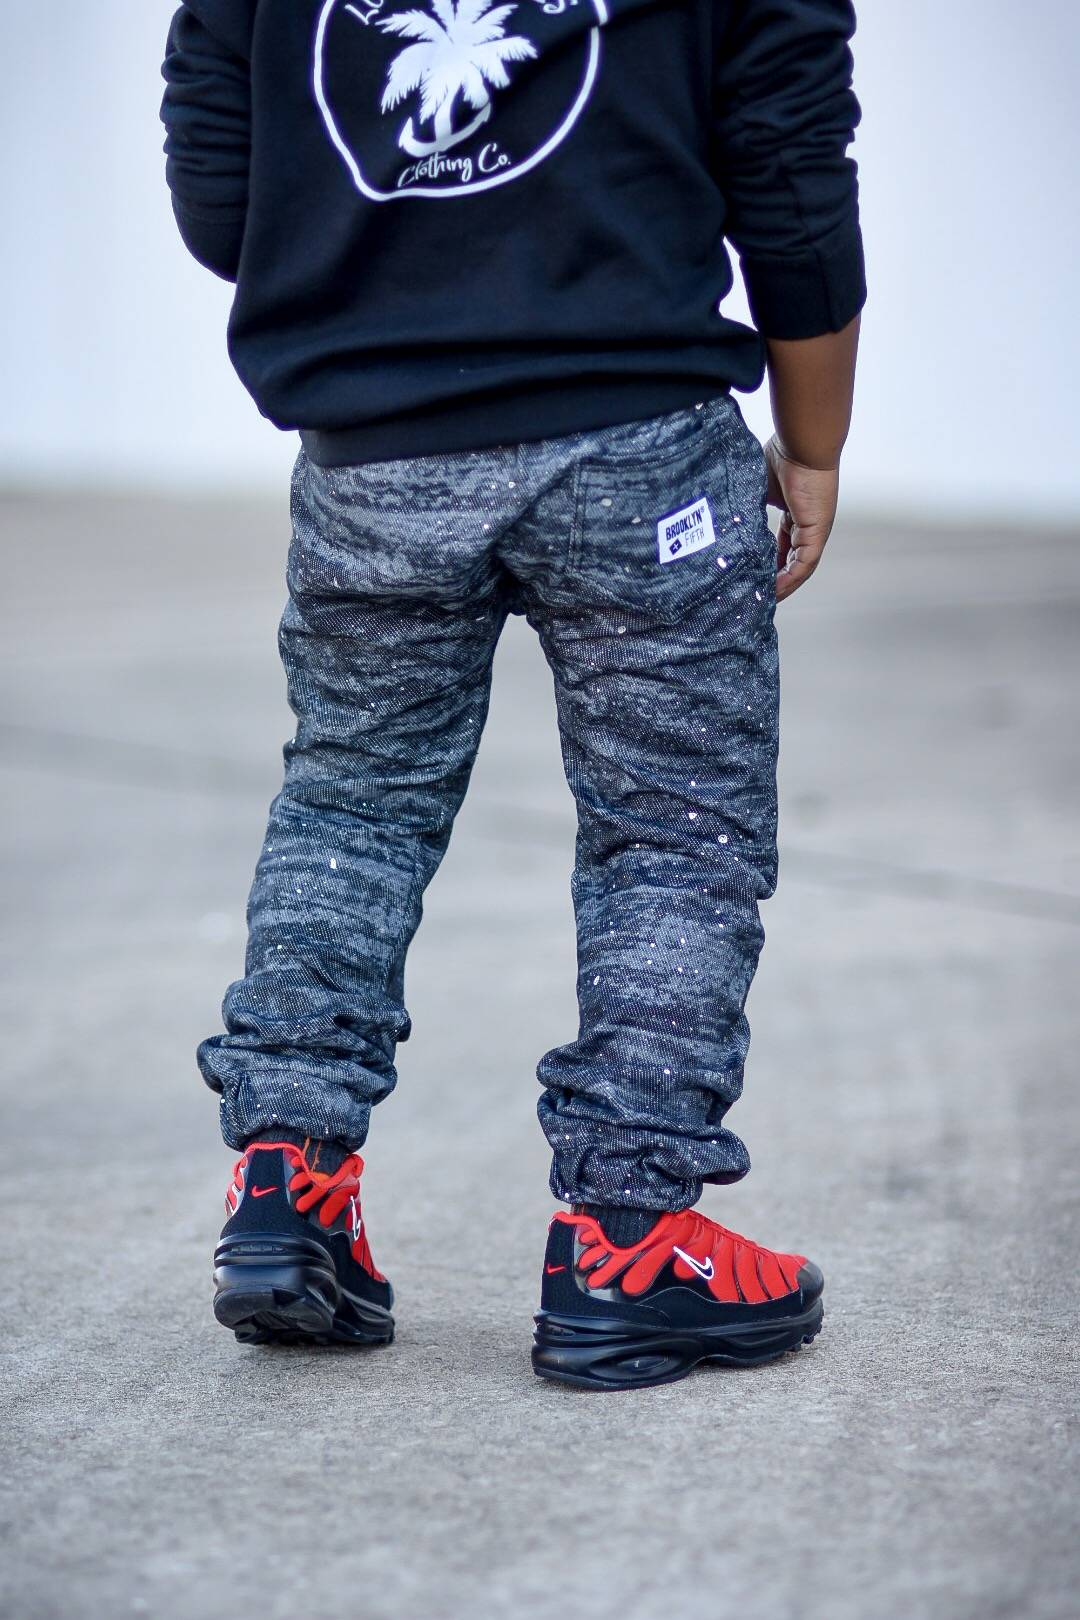 [city joggers] - Brooklyn + Fifth Toddler City jogger Pants. Stylish Toddler Pants. jogger Pants for boys. Soft toddler Pants. Infant Camo Pants. Toddler City Jogger Pants. City Jogger  Pants. Kids Pants. Made in the USA!